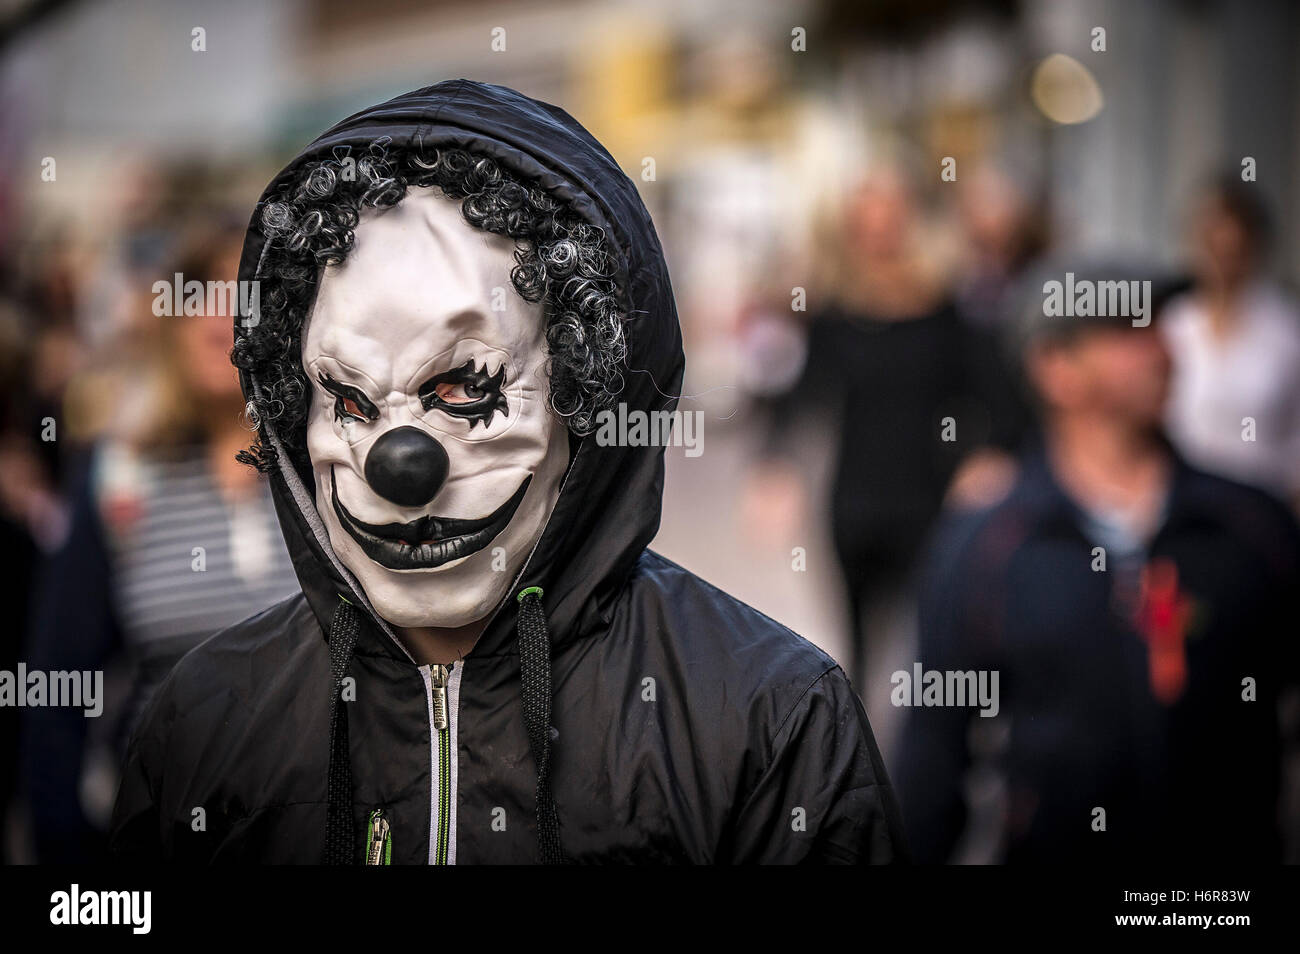 A teenager wearing a clown mask during Halloween celebrations. - Stock Image